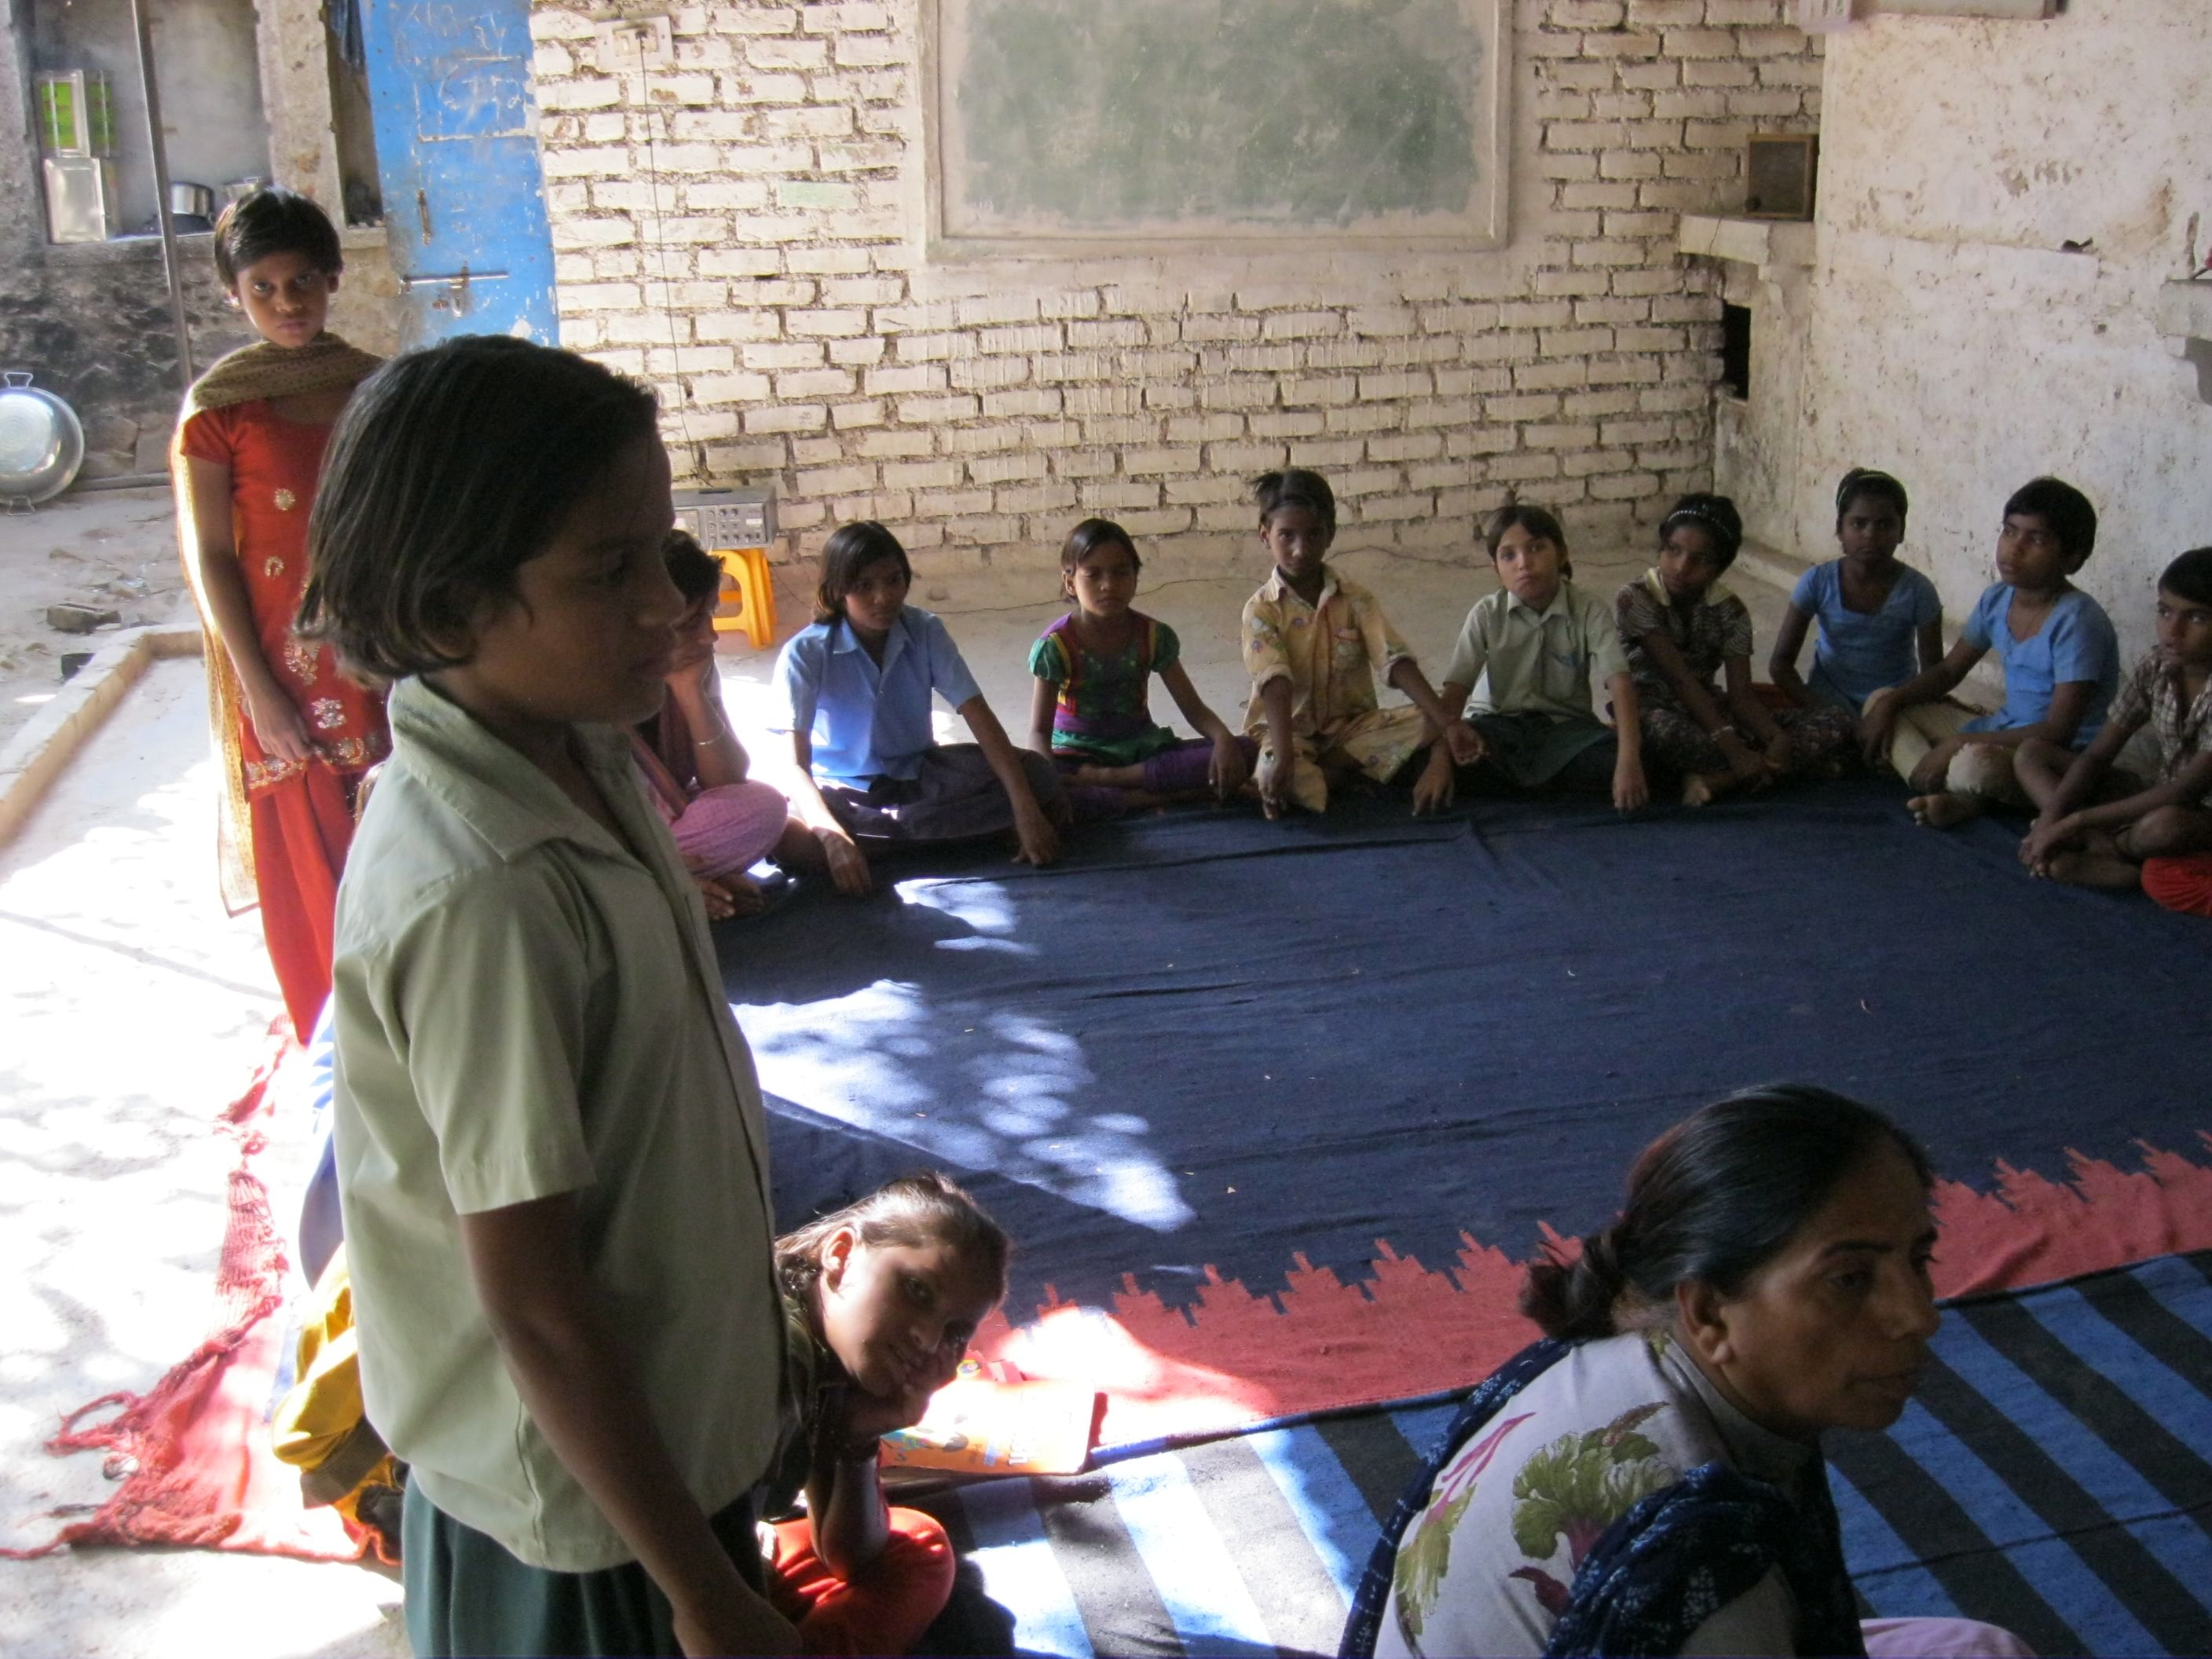 All the young tribal girls enrolled at the Adharshila Awasiya Vidyalaya in Chittorgarh have awe inspiring stories of struggles and triumphs to share. (Credit: Annapurna Jha\WFS)